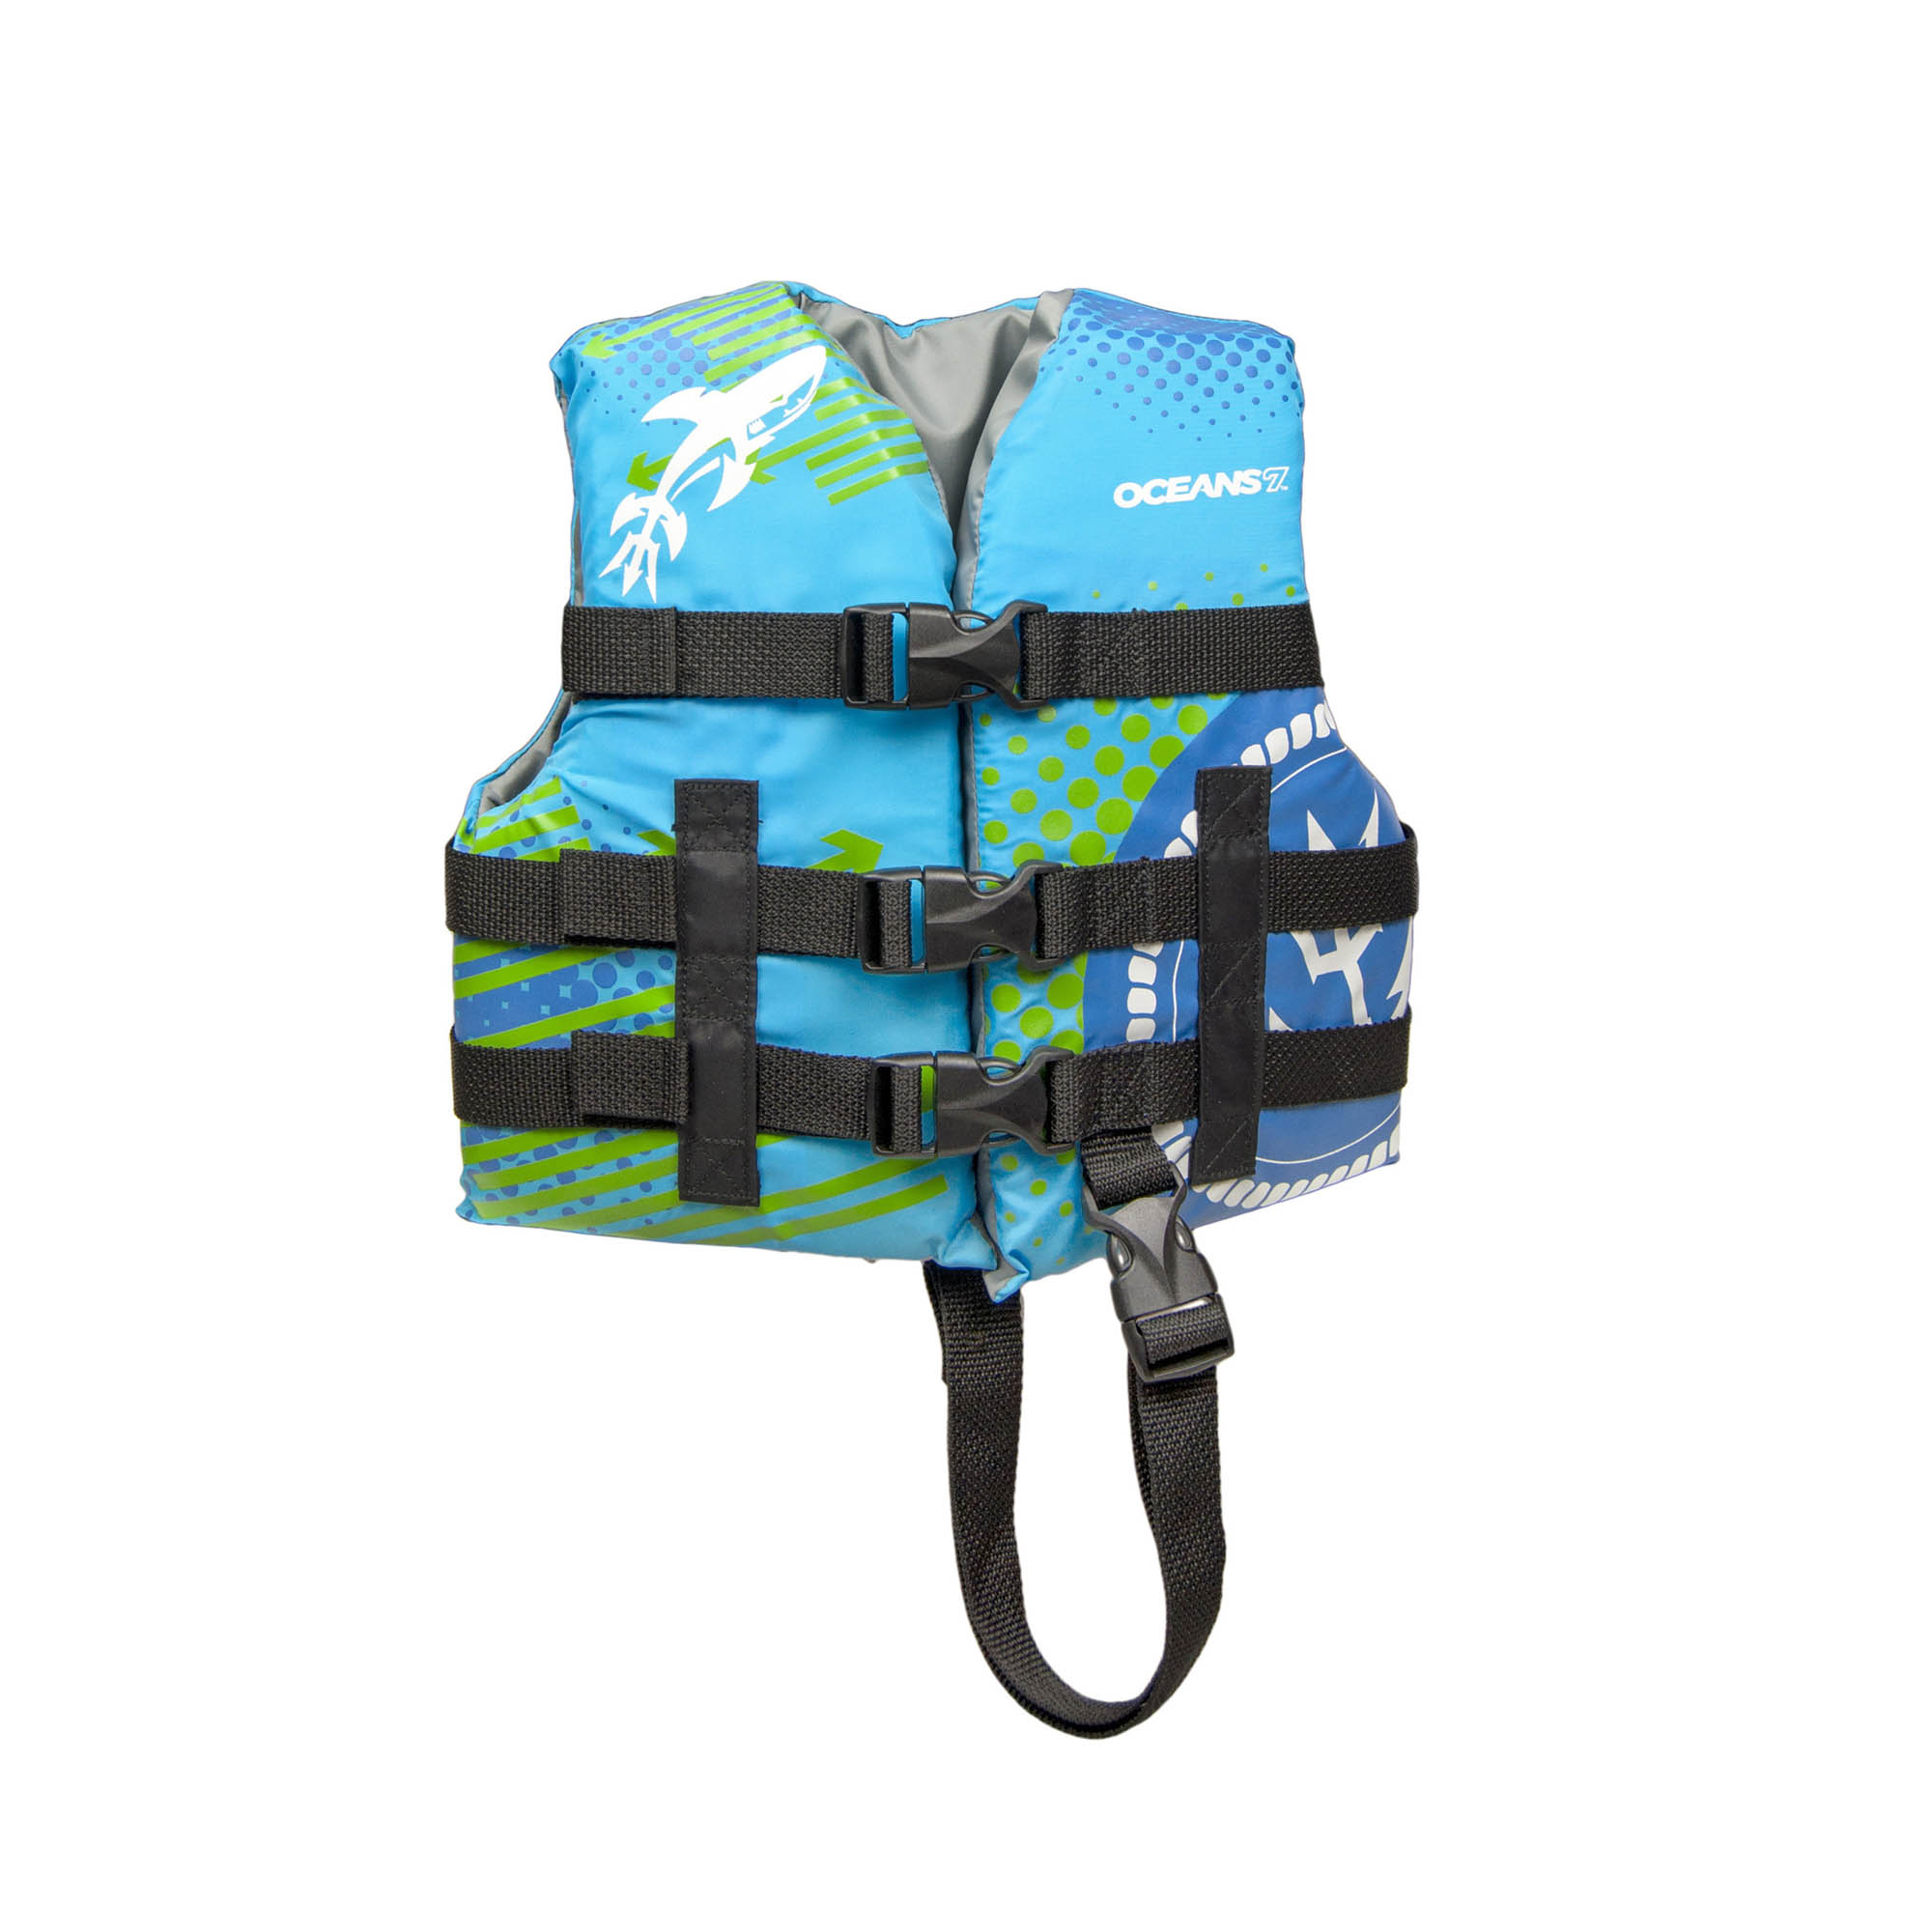 Oceans 7 USCGA 3 Buckle Youth Life Vest, Oxford Child, Aqua by AQUA LEISURE IND.